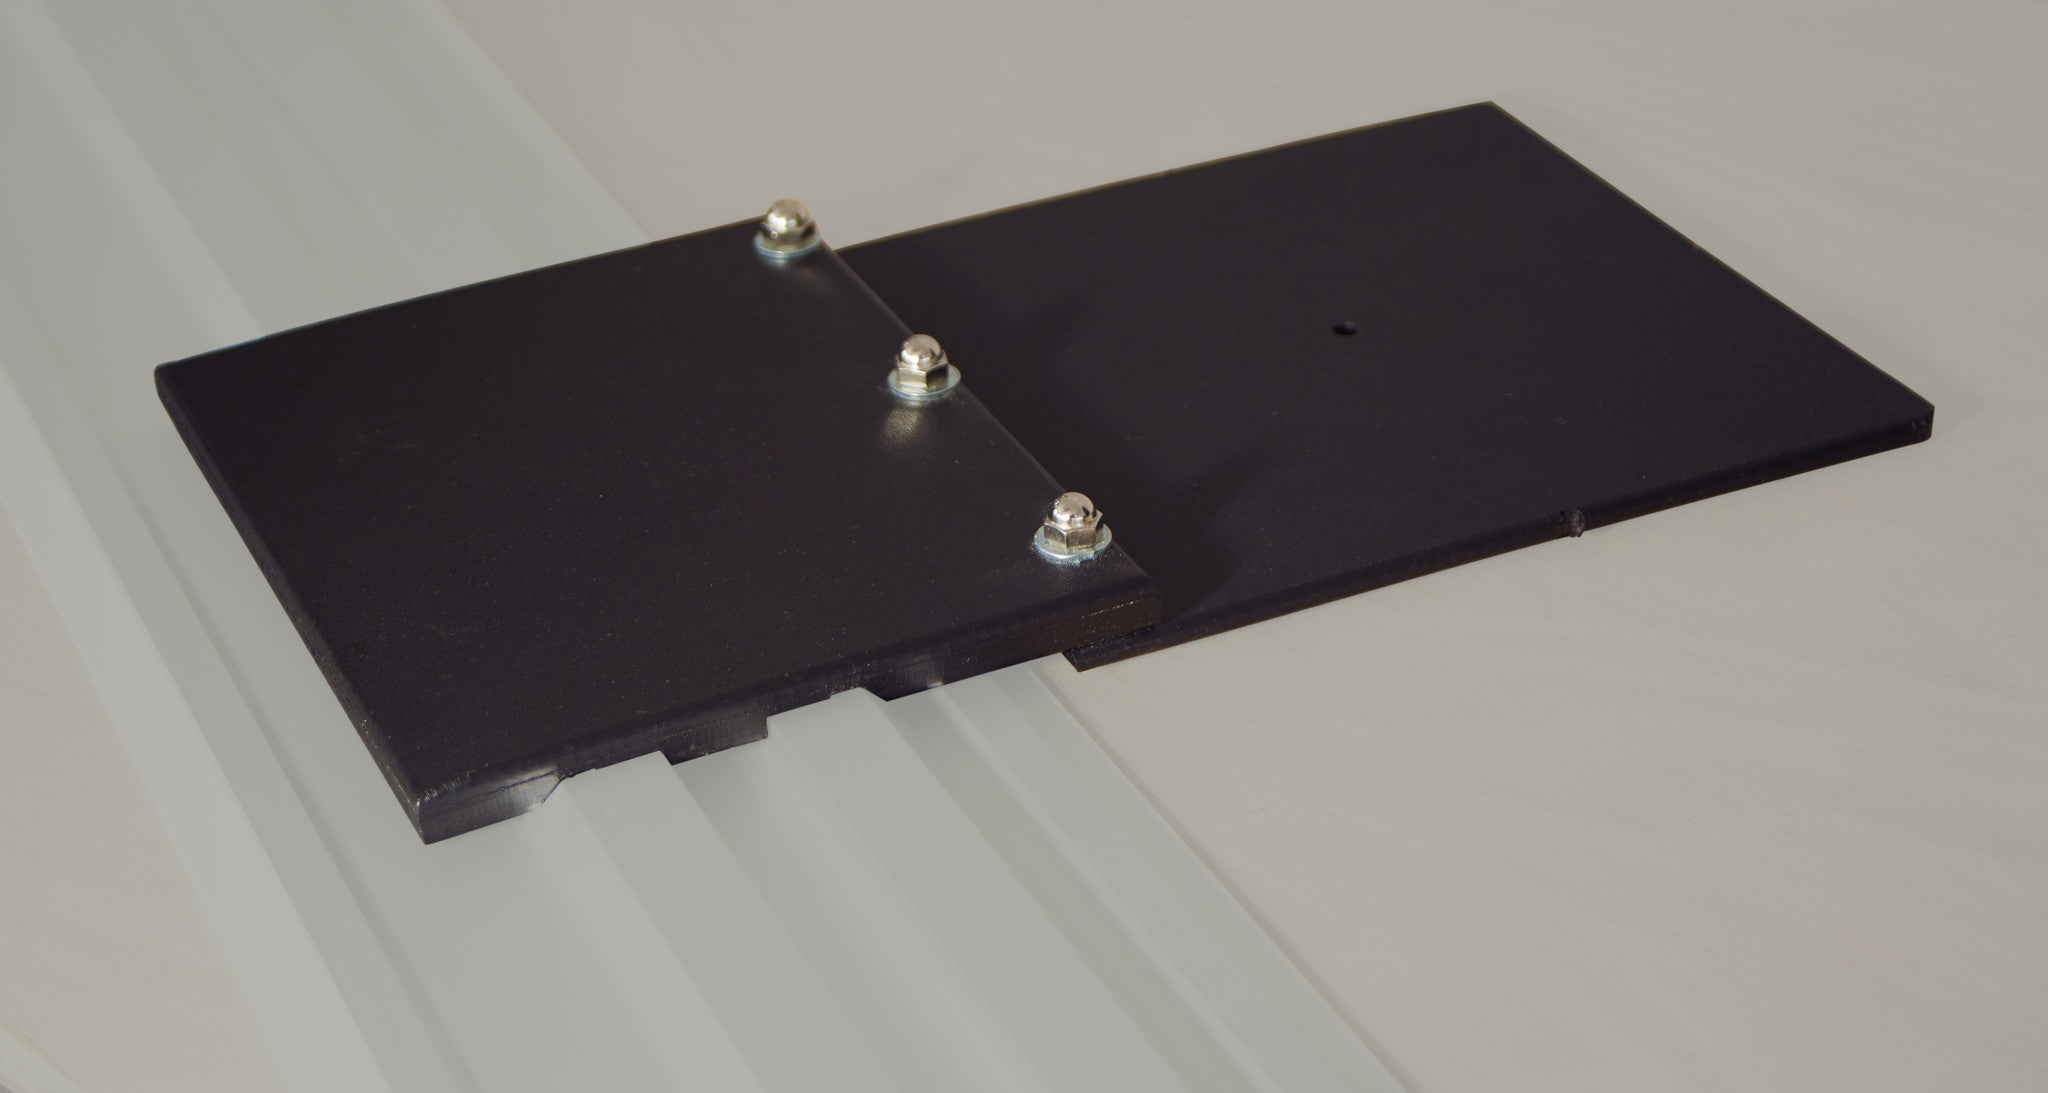 TrueTrac Router Adapter Plate